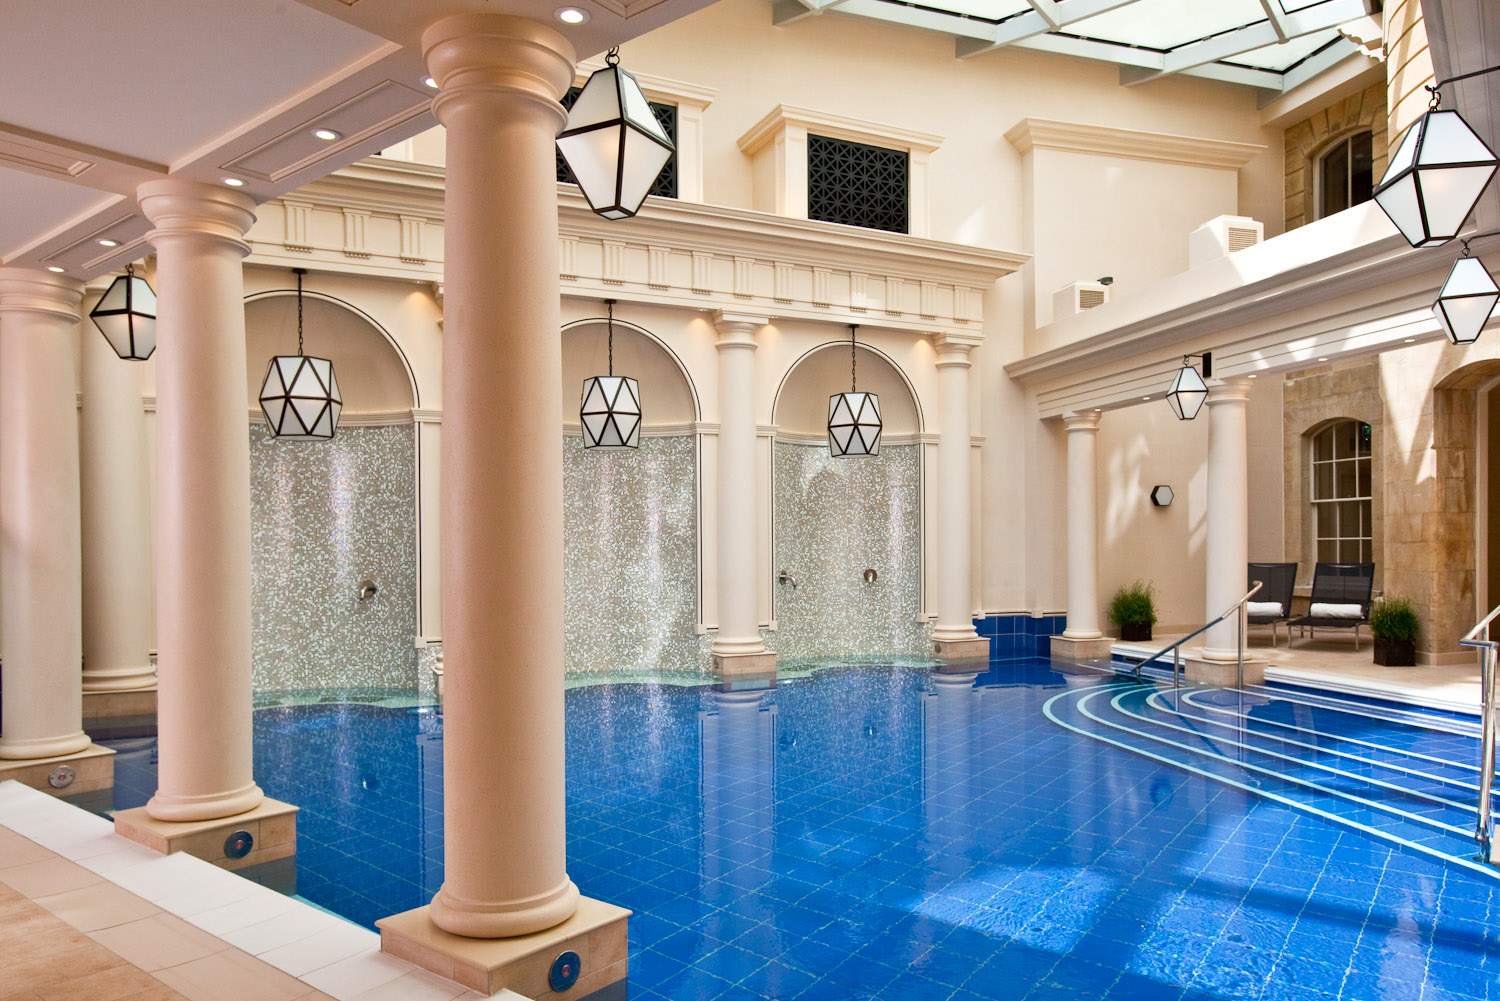 The Gainsborough Bath Spa, England.